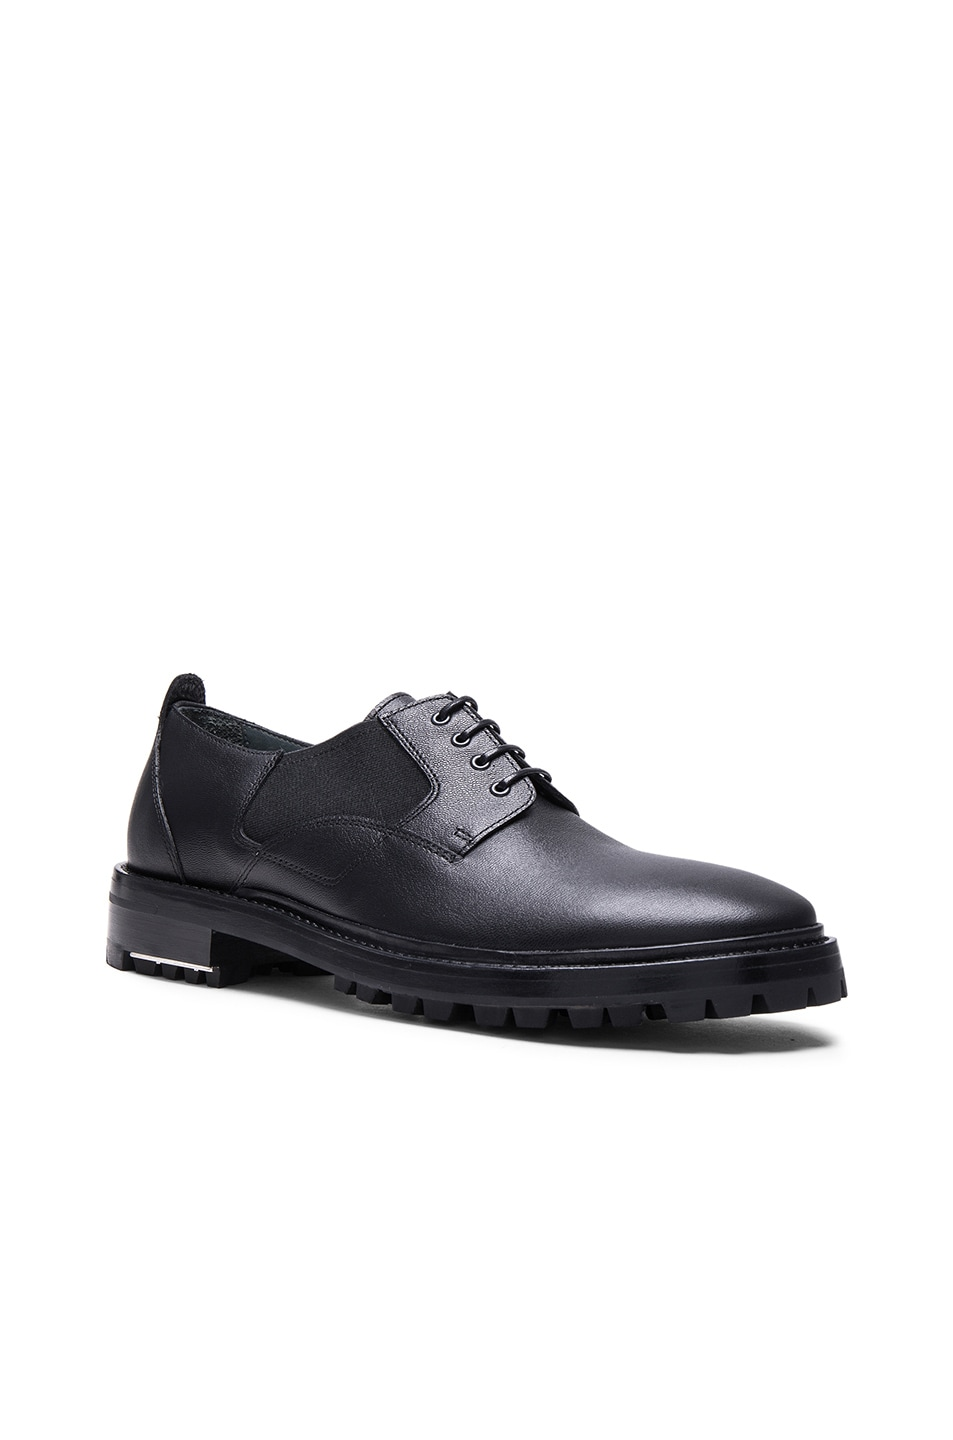 Image 1 of Lanvin Shiny Derbies with Elastic Details in Black